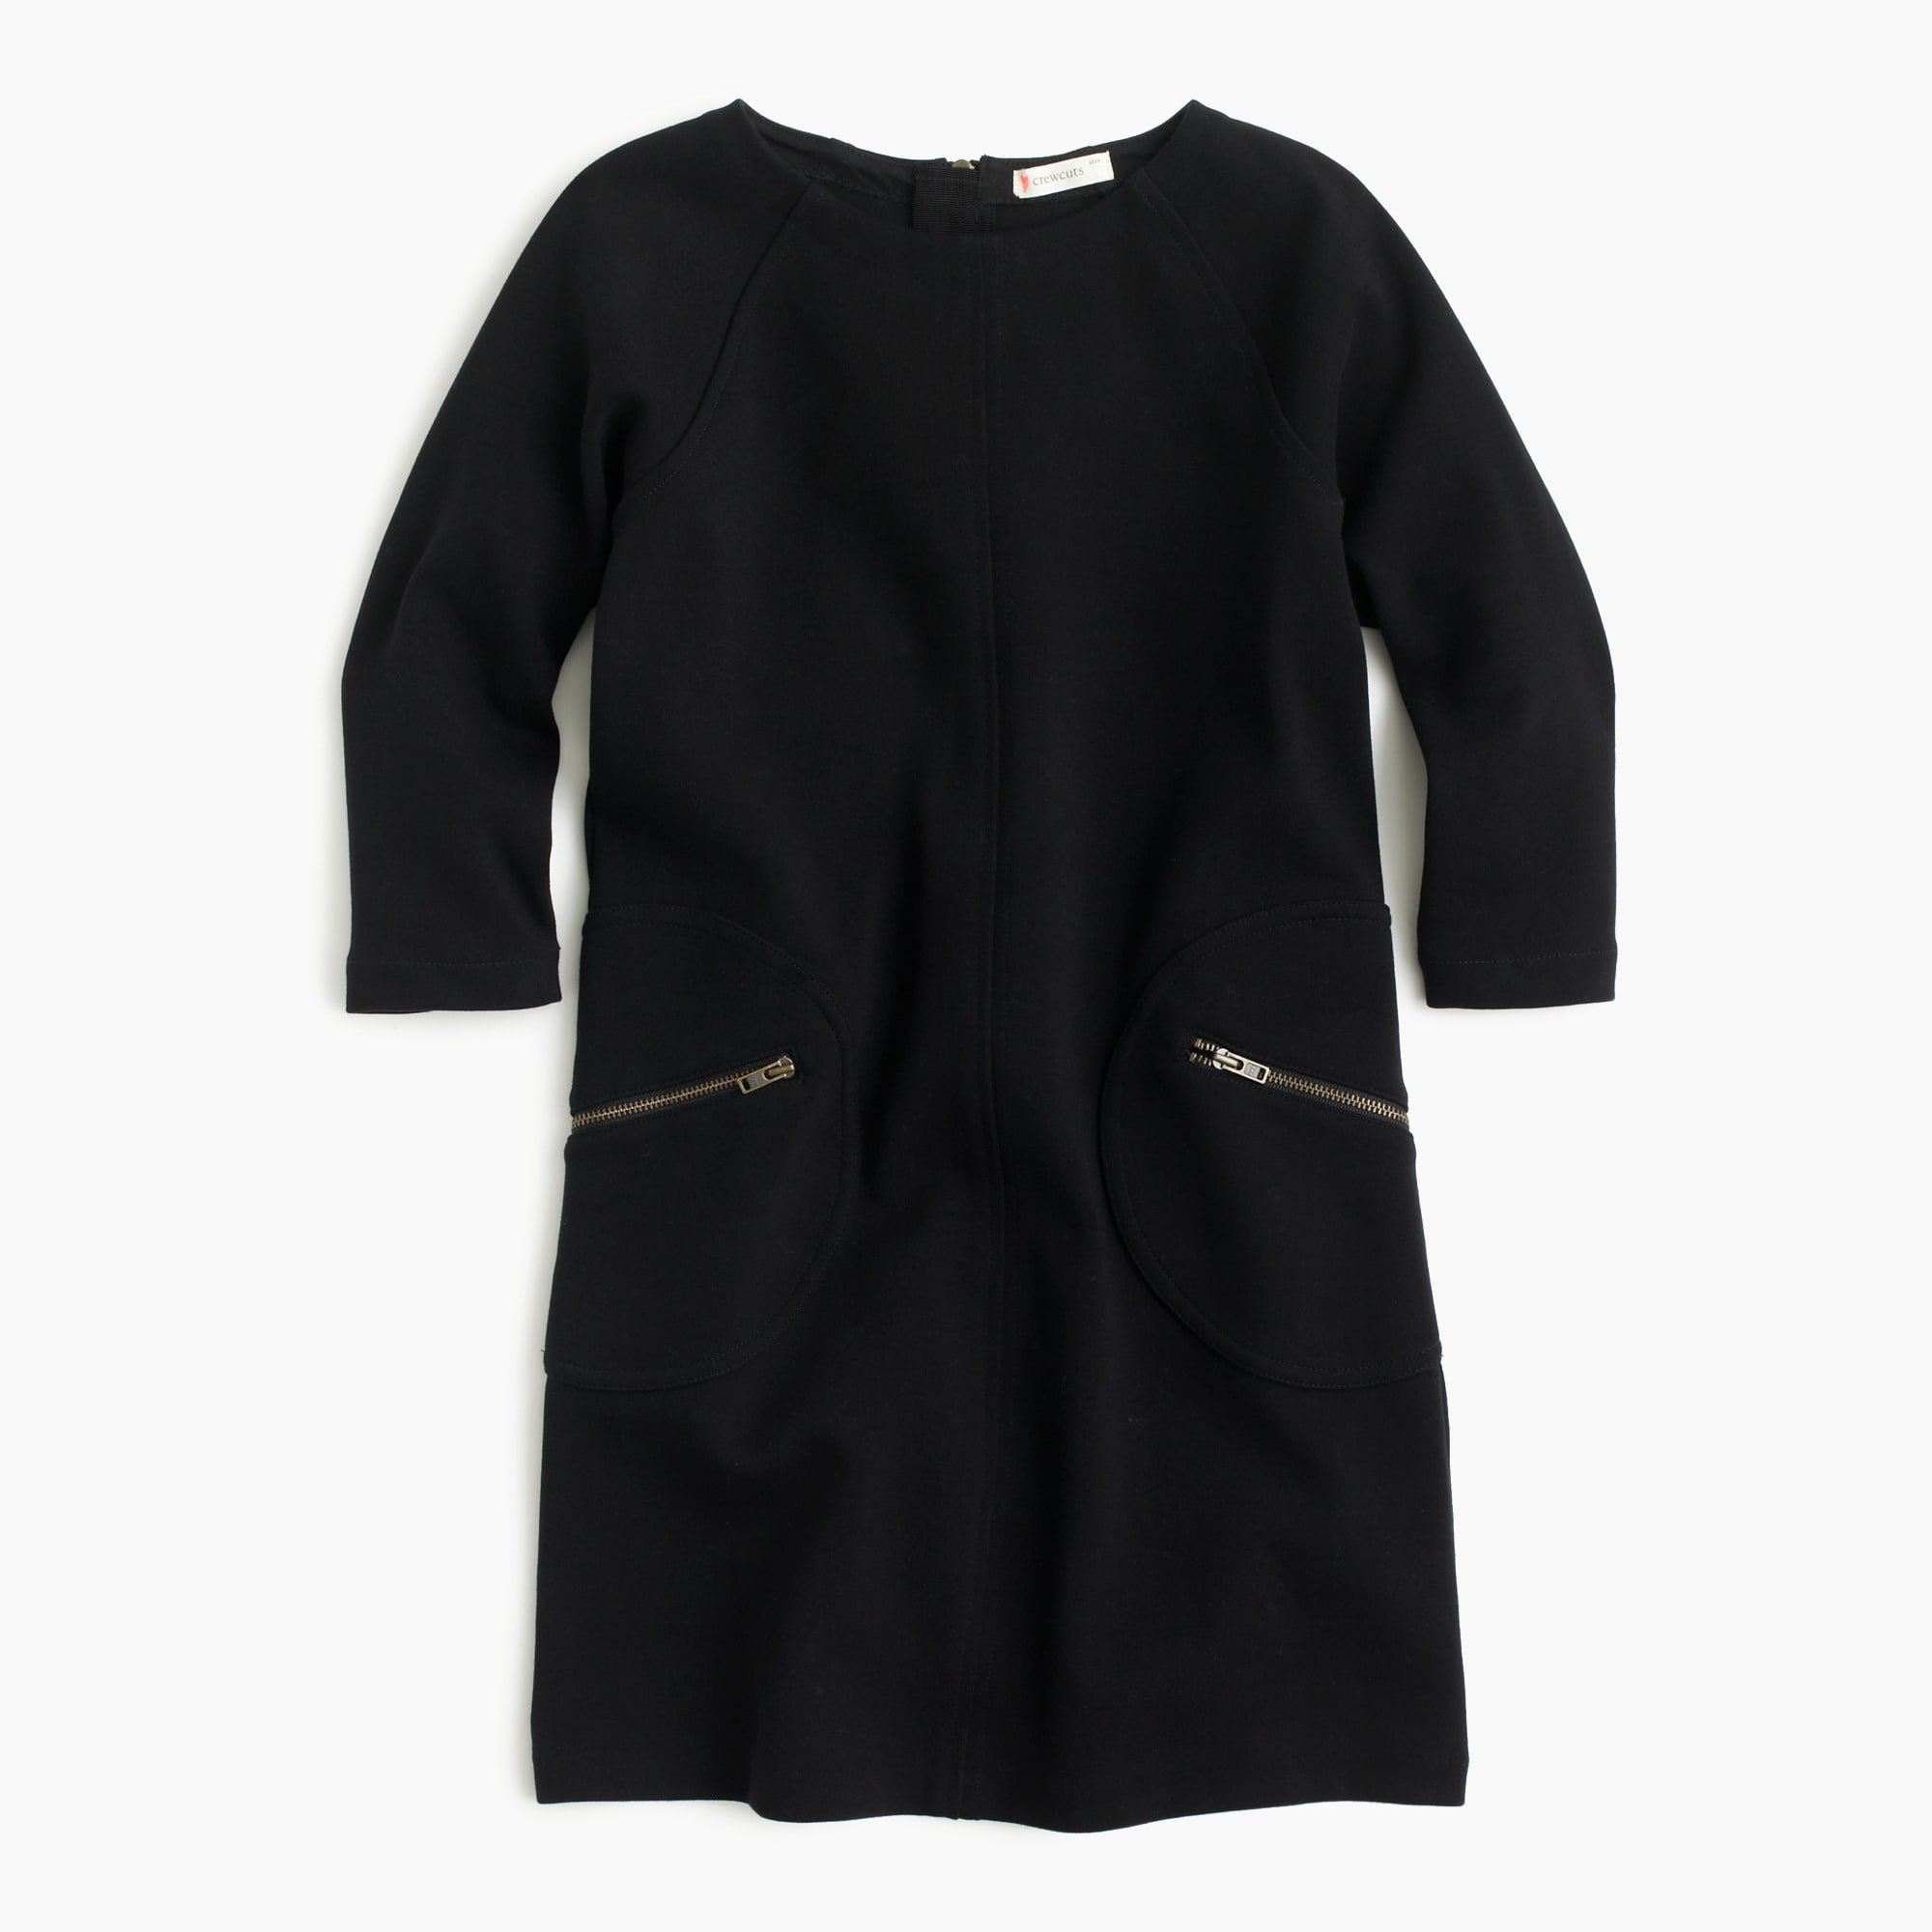 Girls' shift dress with zippers